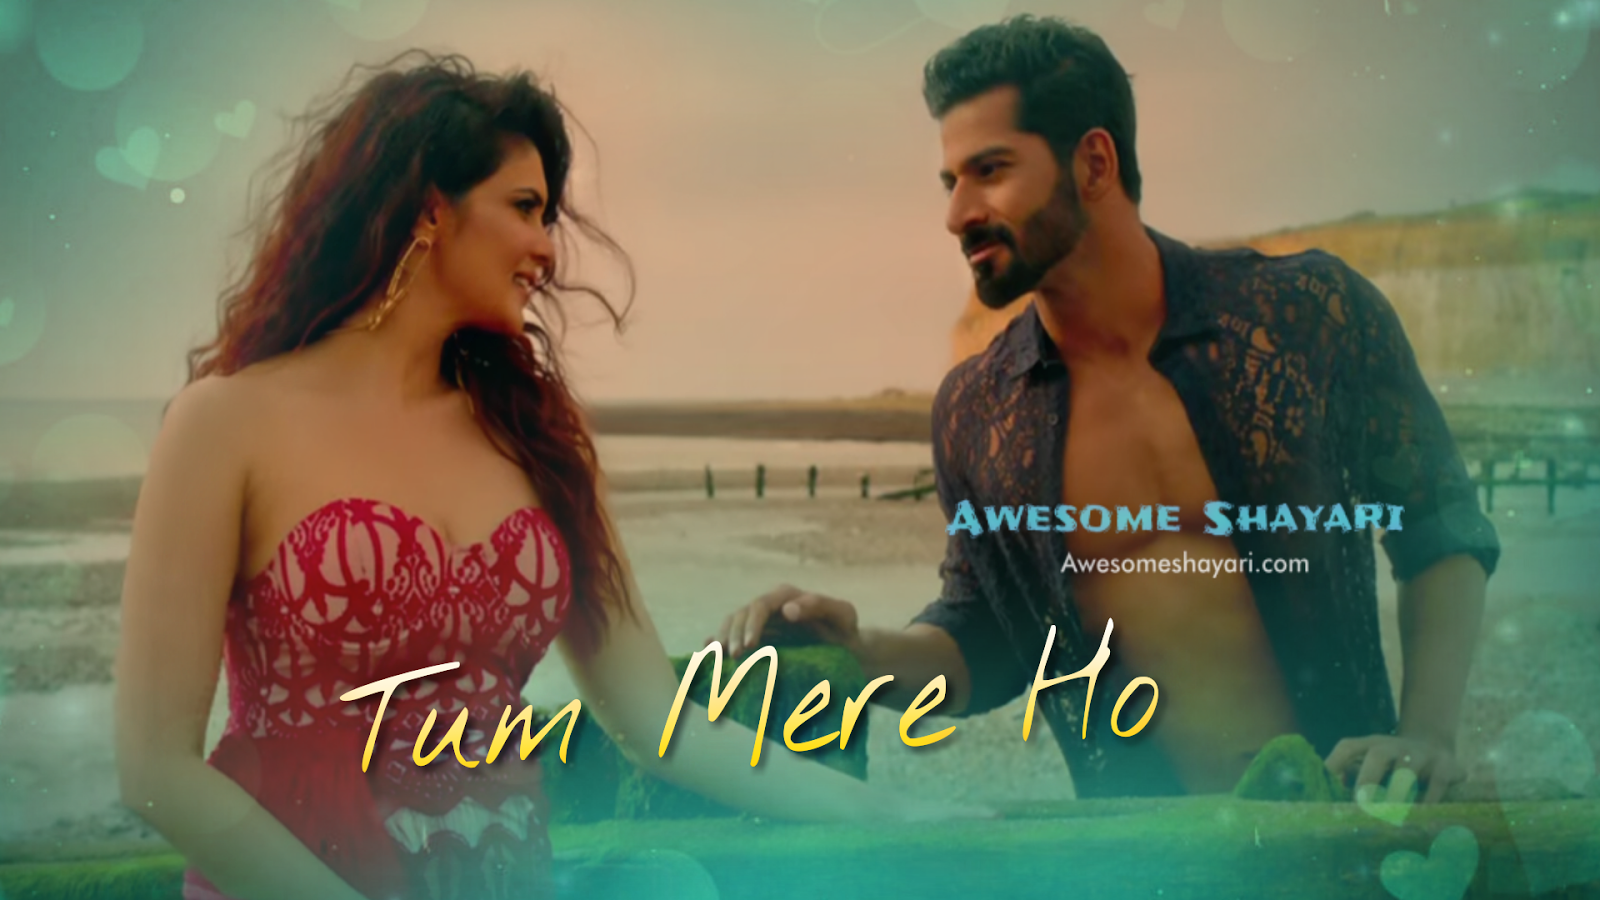 Tum mere ho hate story 4 , hate story 4 images, Tum mere ho song images